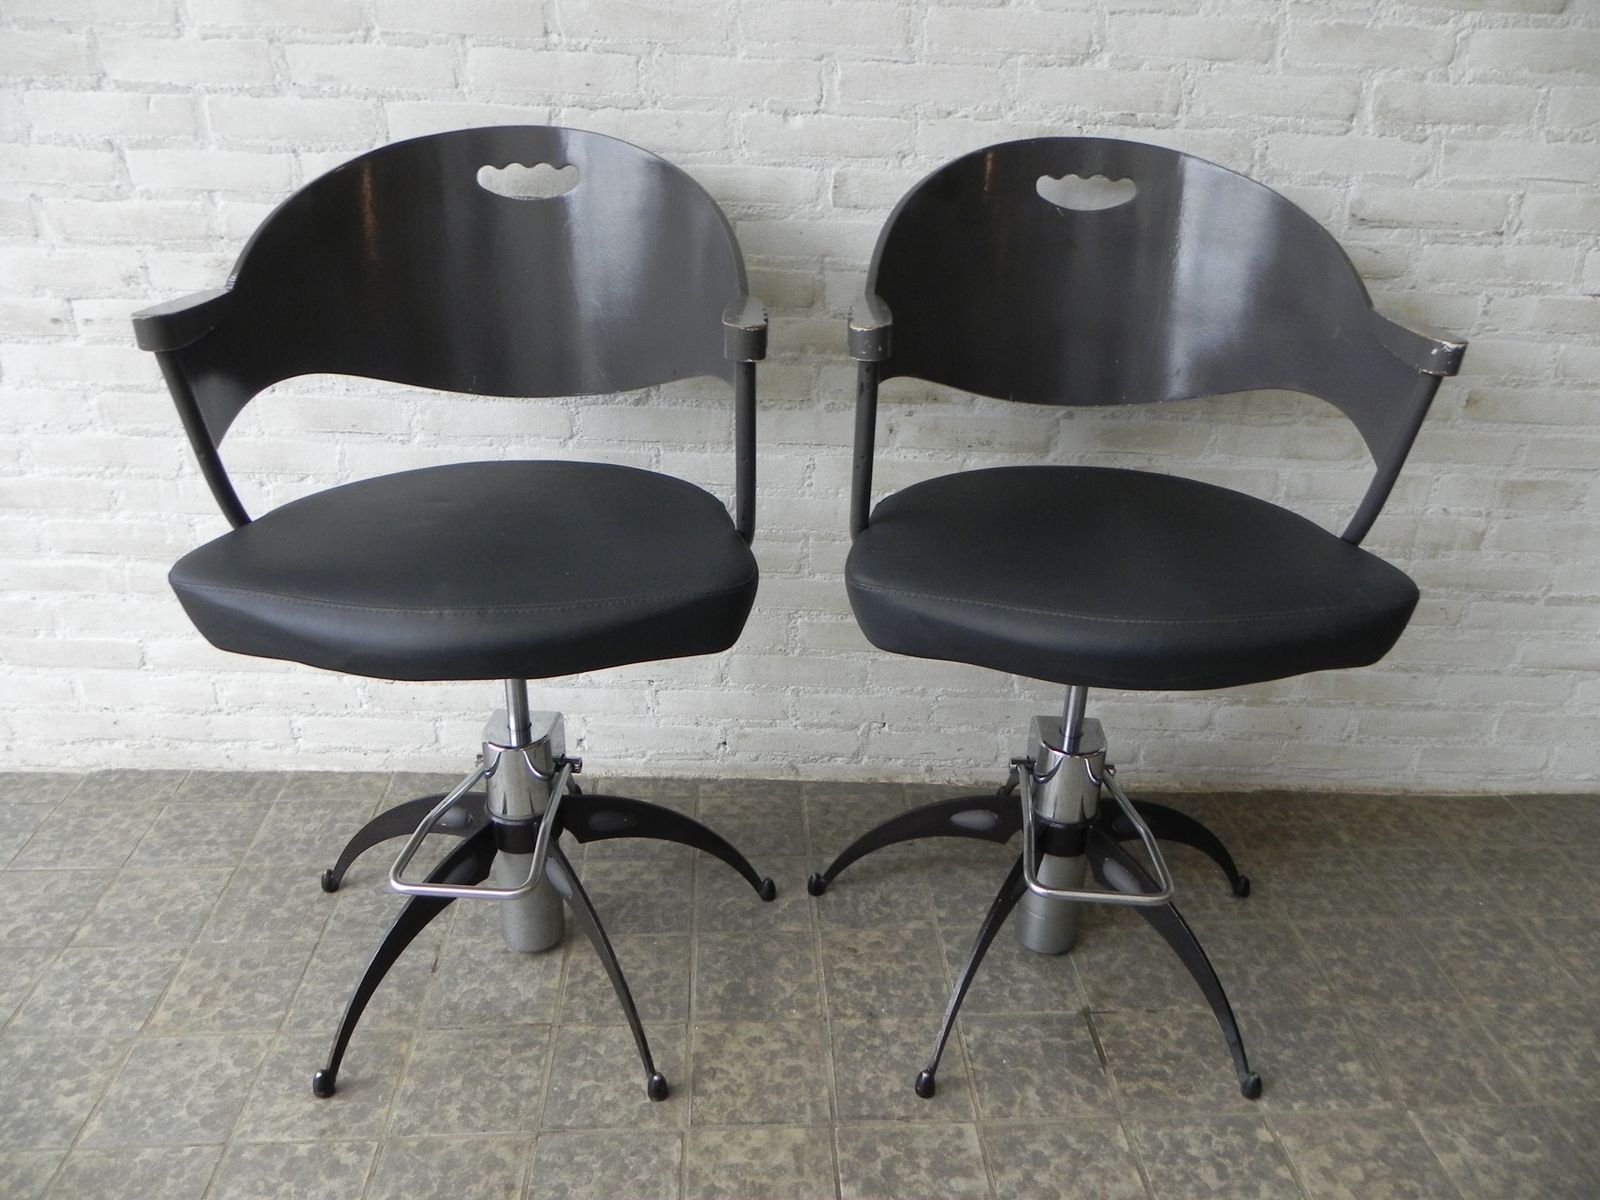 Hydraulic memphis style office chair 1980s for sale at pamono for 1980s chair